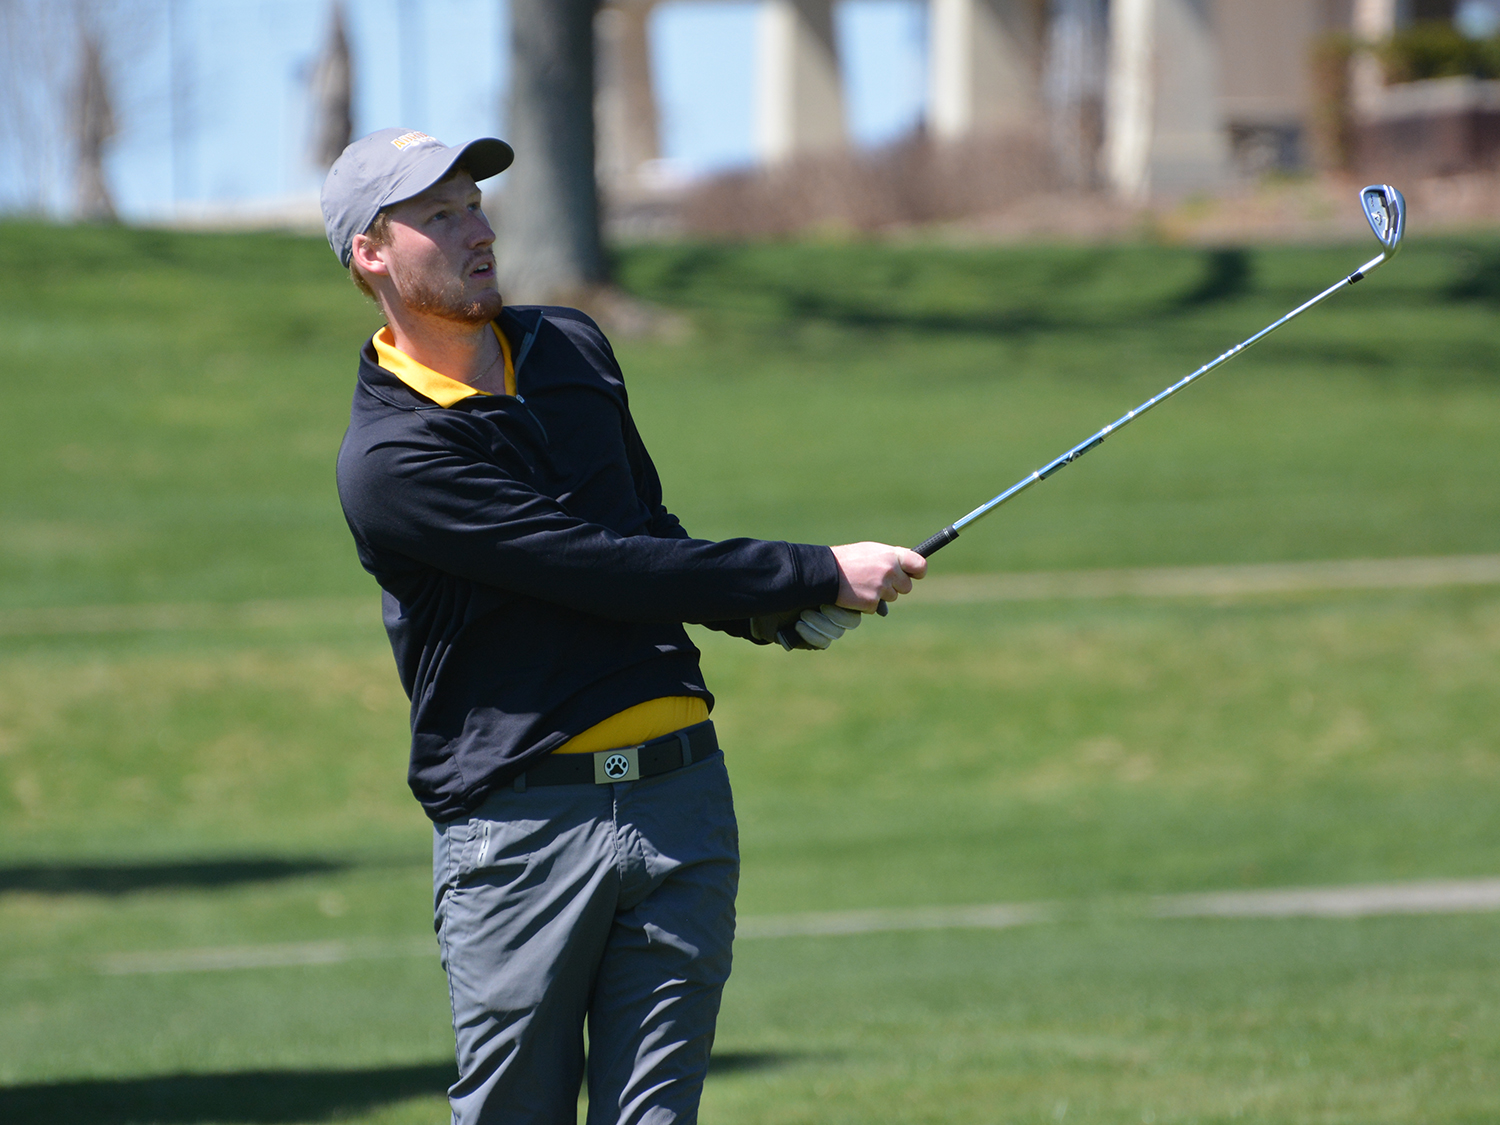 Adrian freshman Brett McGugan watches his approach shot during opening-round play at the MIAA Automatic Qualifying Tournament. (Action photo by Sheila Blackman, MIAA)